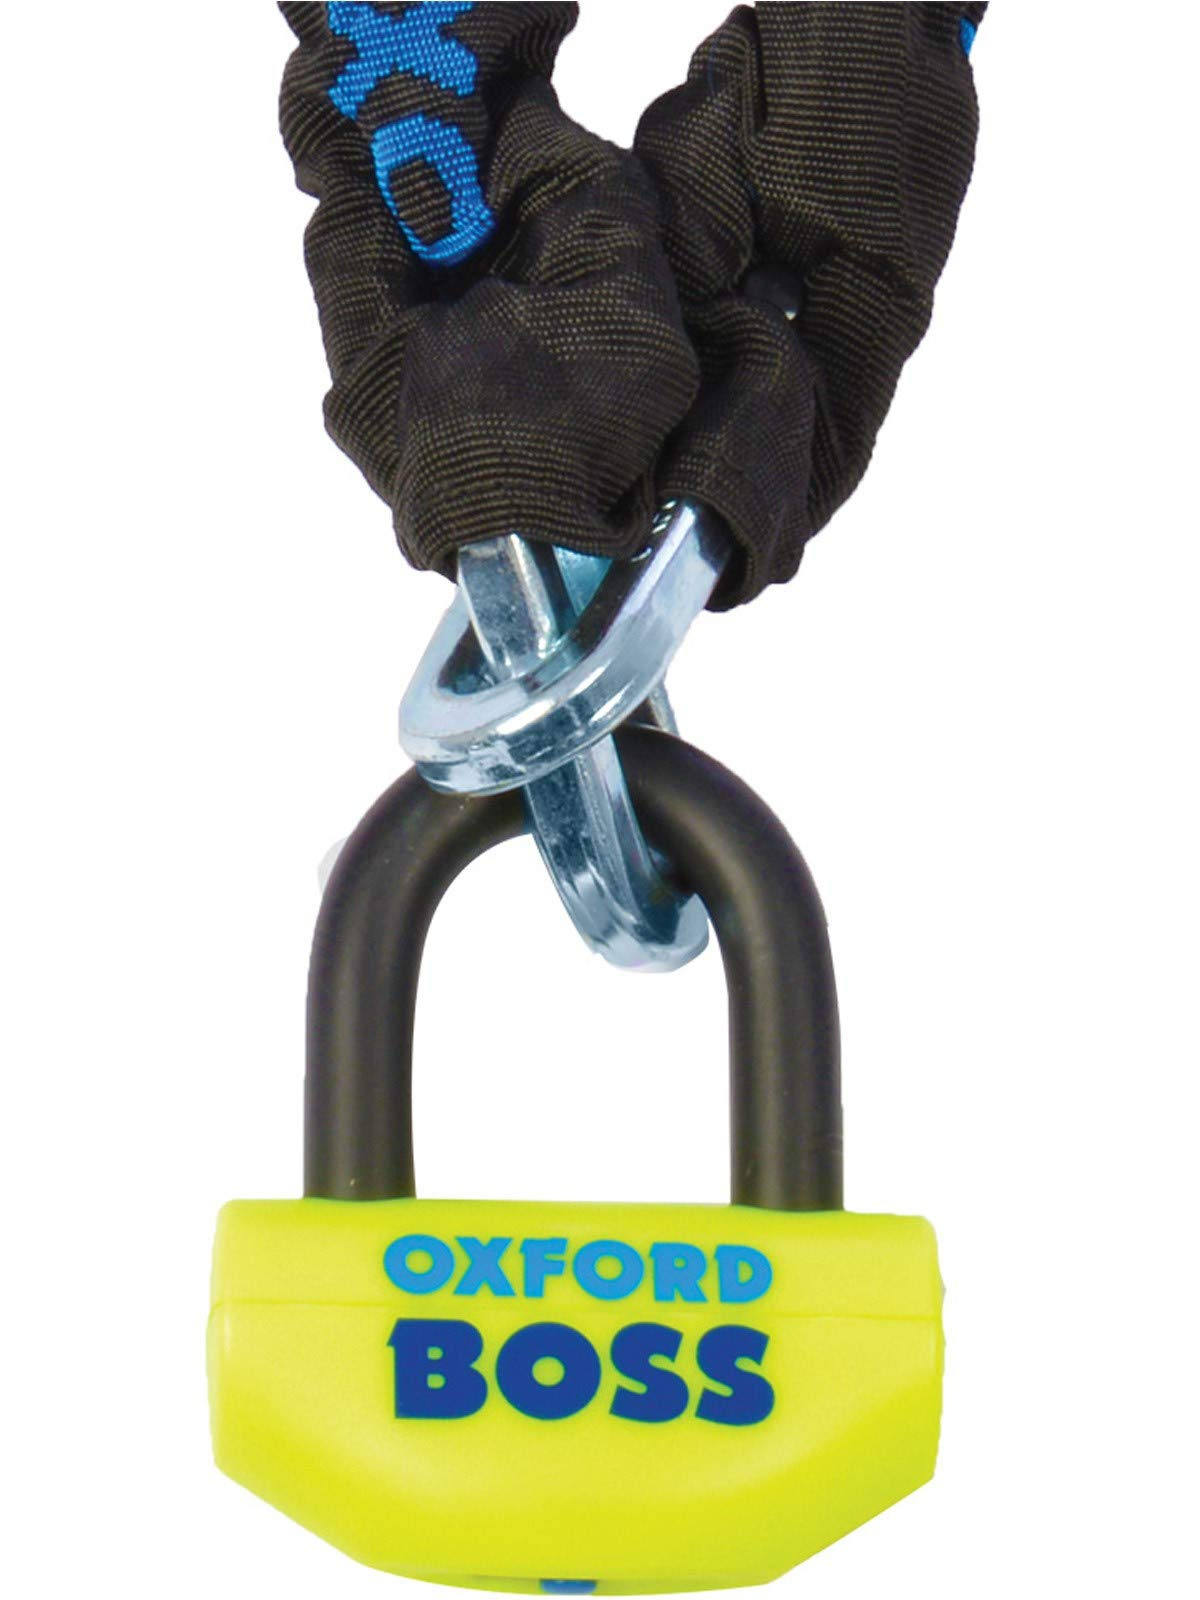 Oxford OF806 Boss Chain Lock Universal Yellow 2.0m Double Locking System Moto